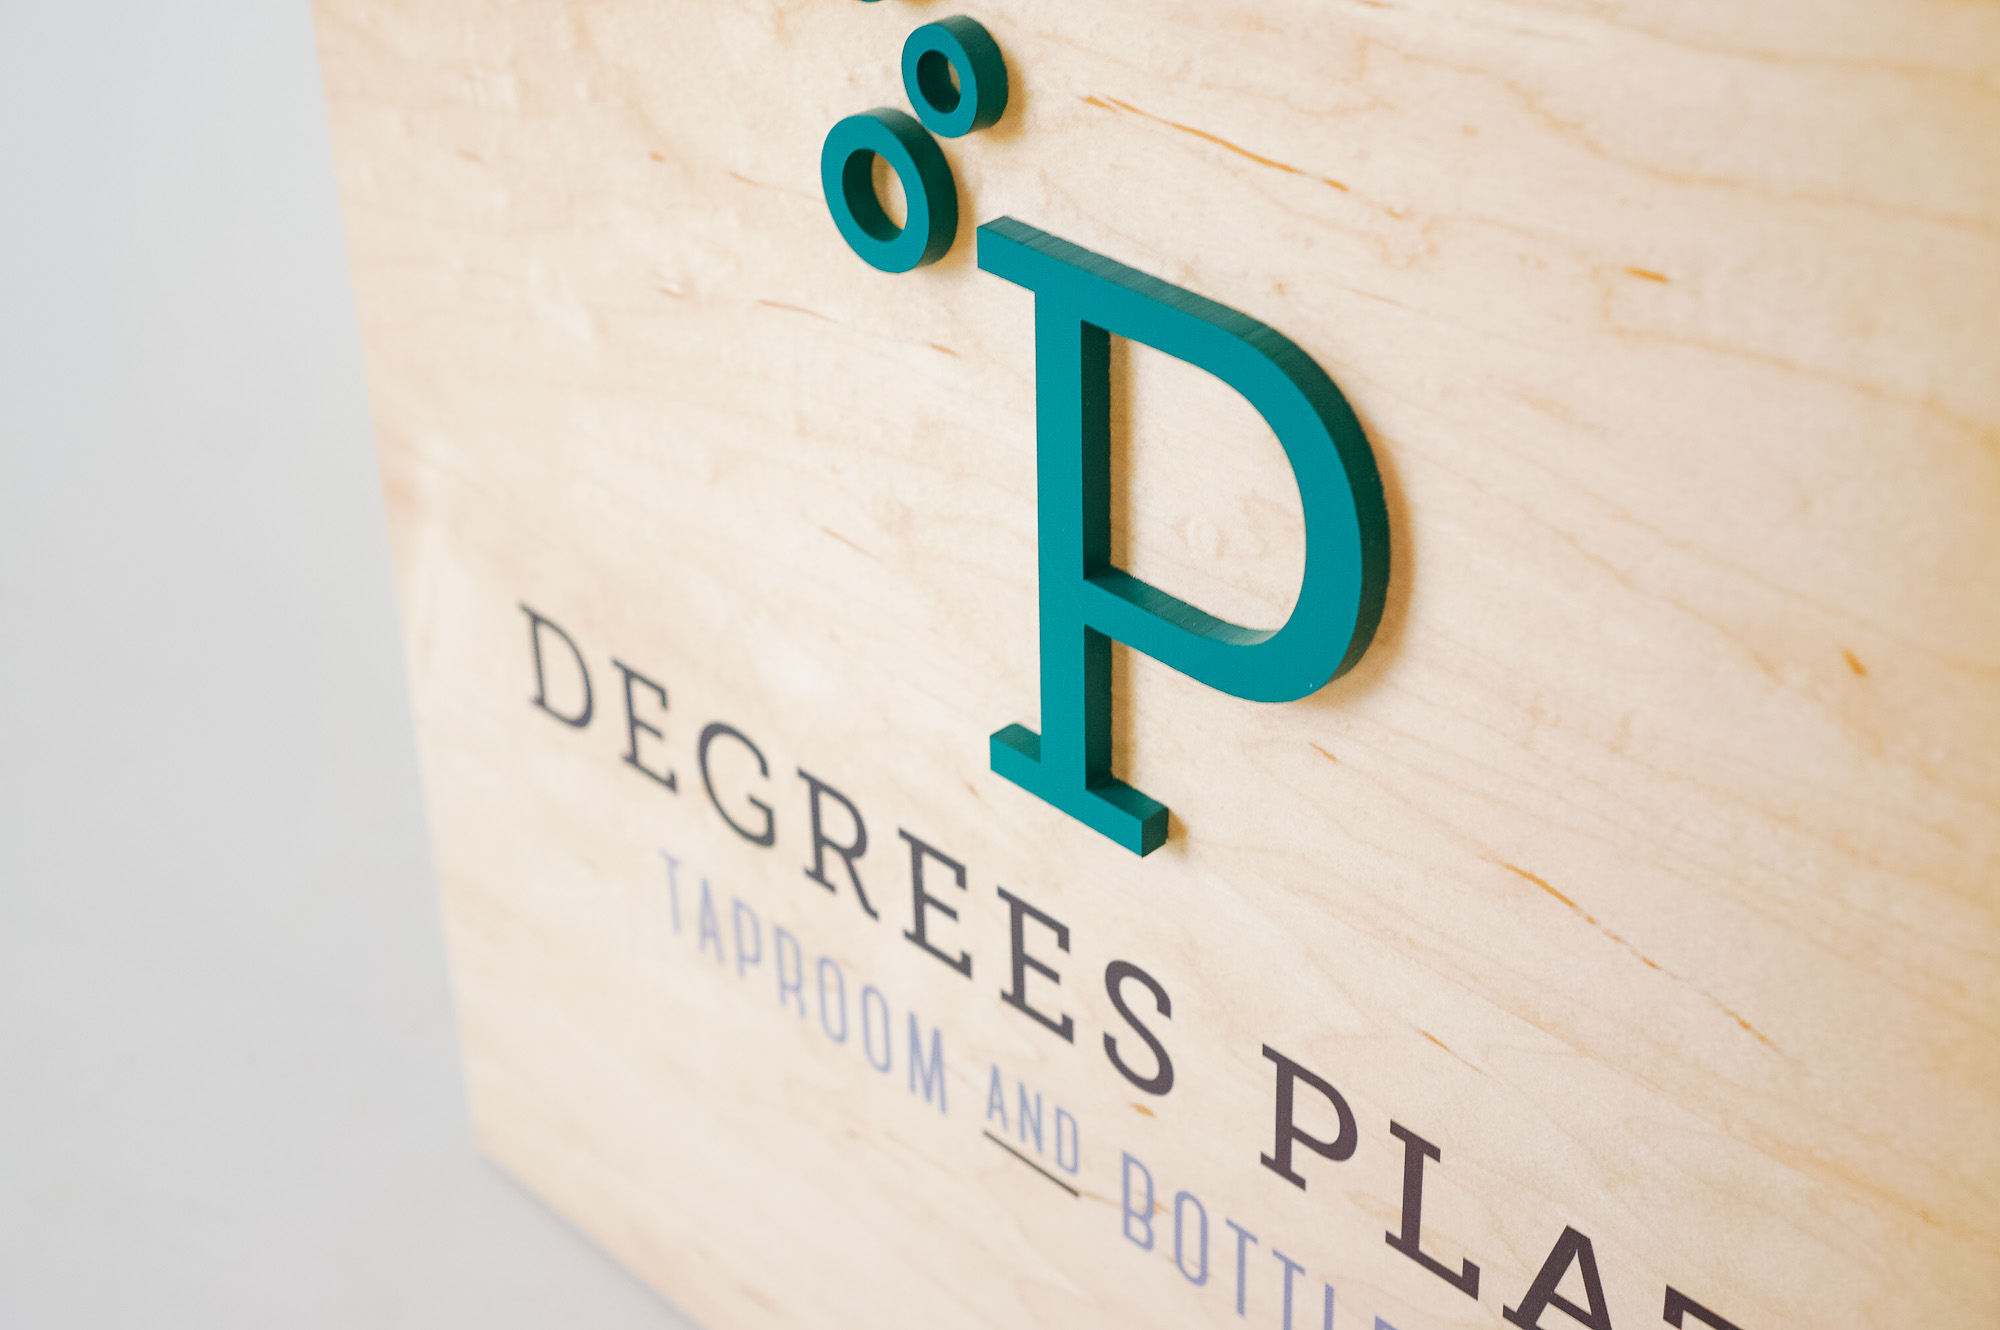 Light wood menu sign for Degrees Plato, a family-friendly Latin kitchen & locally focused craft beer bar in Oakland, CA.